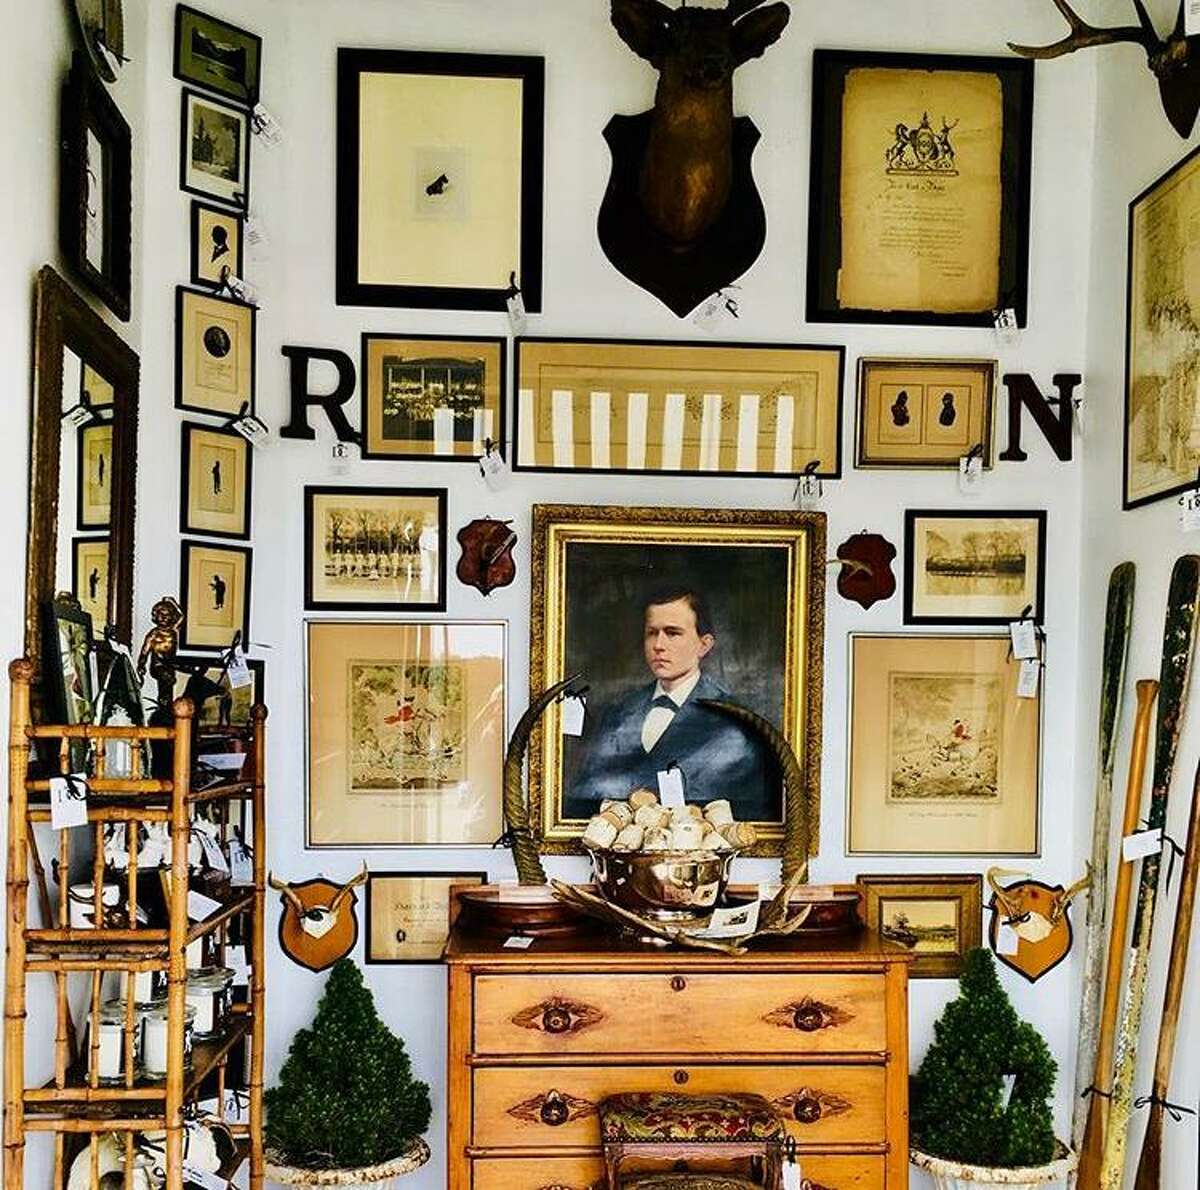 Objects give off vibrations just like people, antique dealer Chris Chervenak believes, and he has learned to trust the chemistry he feels (or doesn't feel) the moment he lays eyes on an antique or a newer piece.